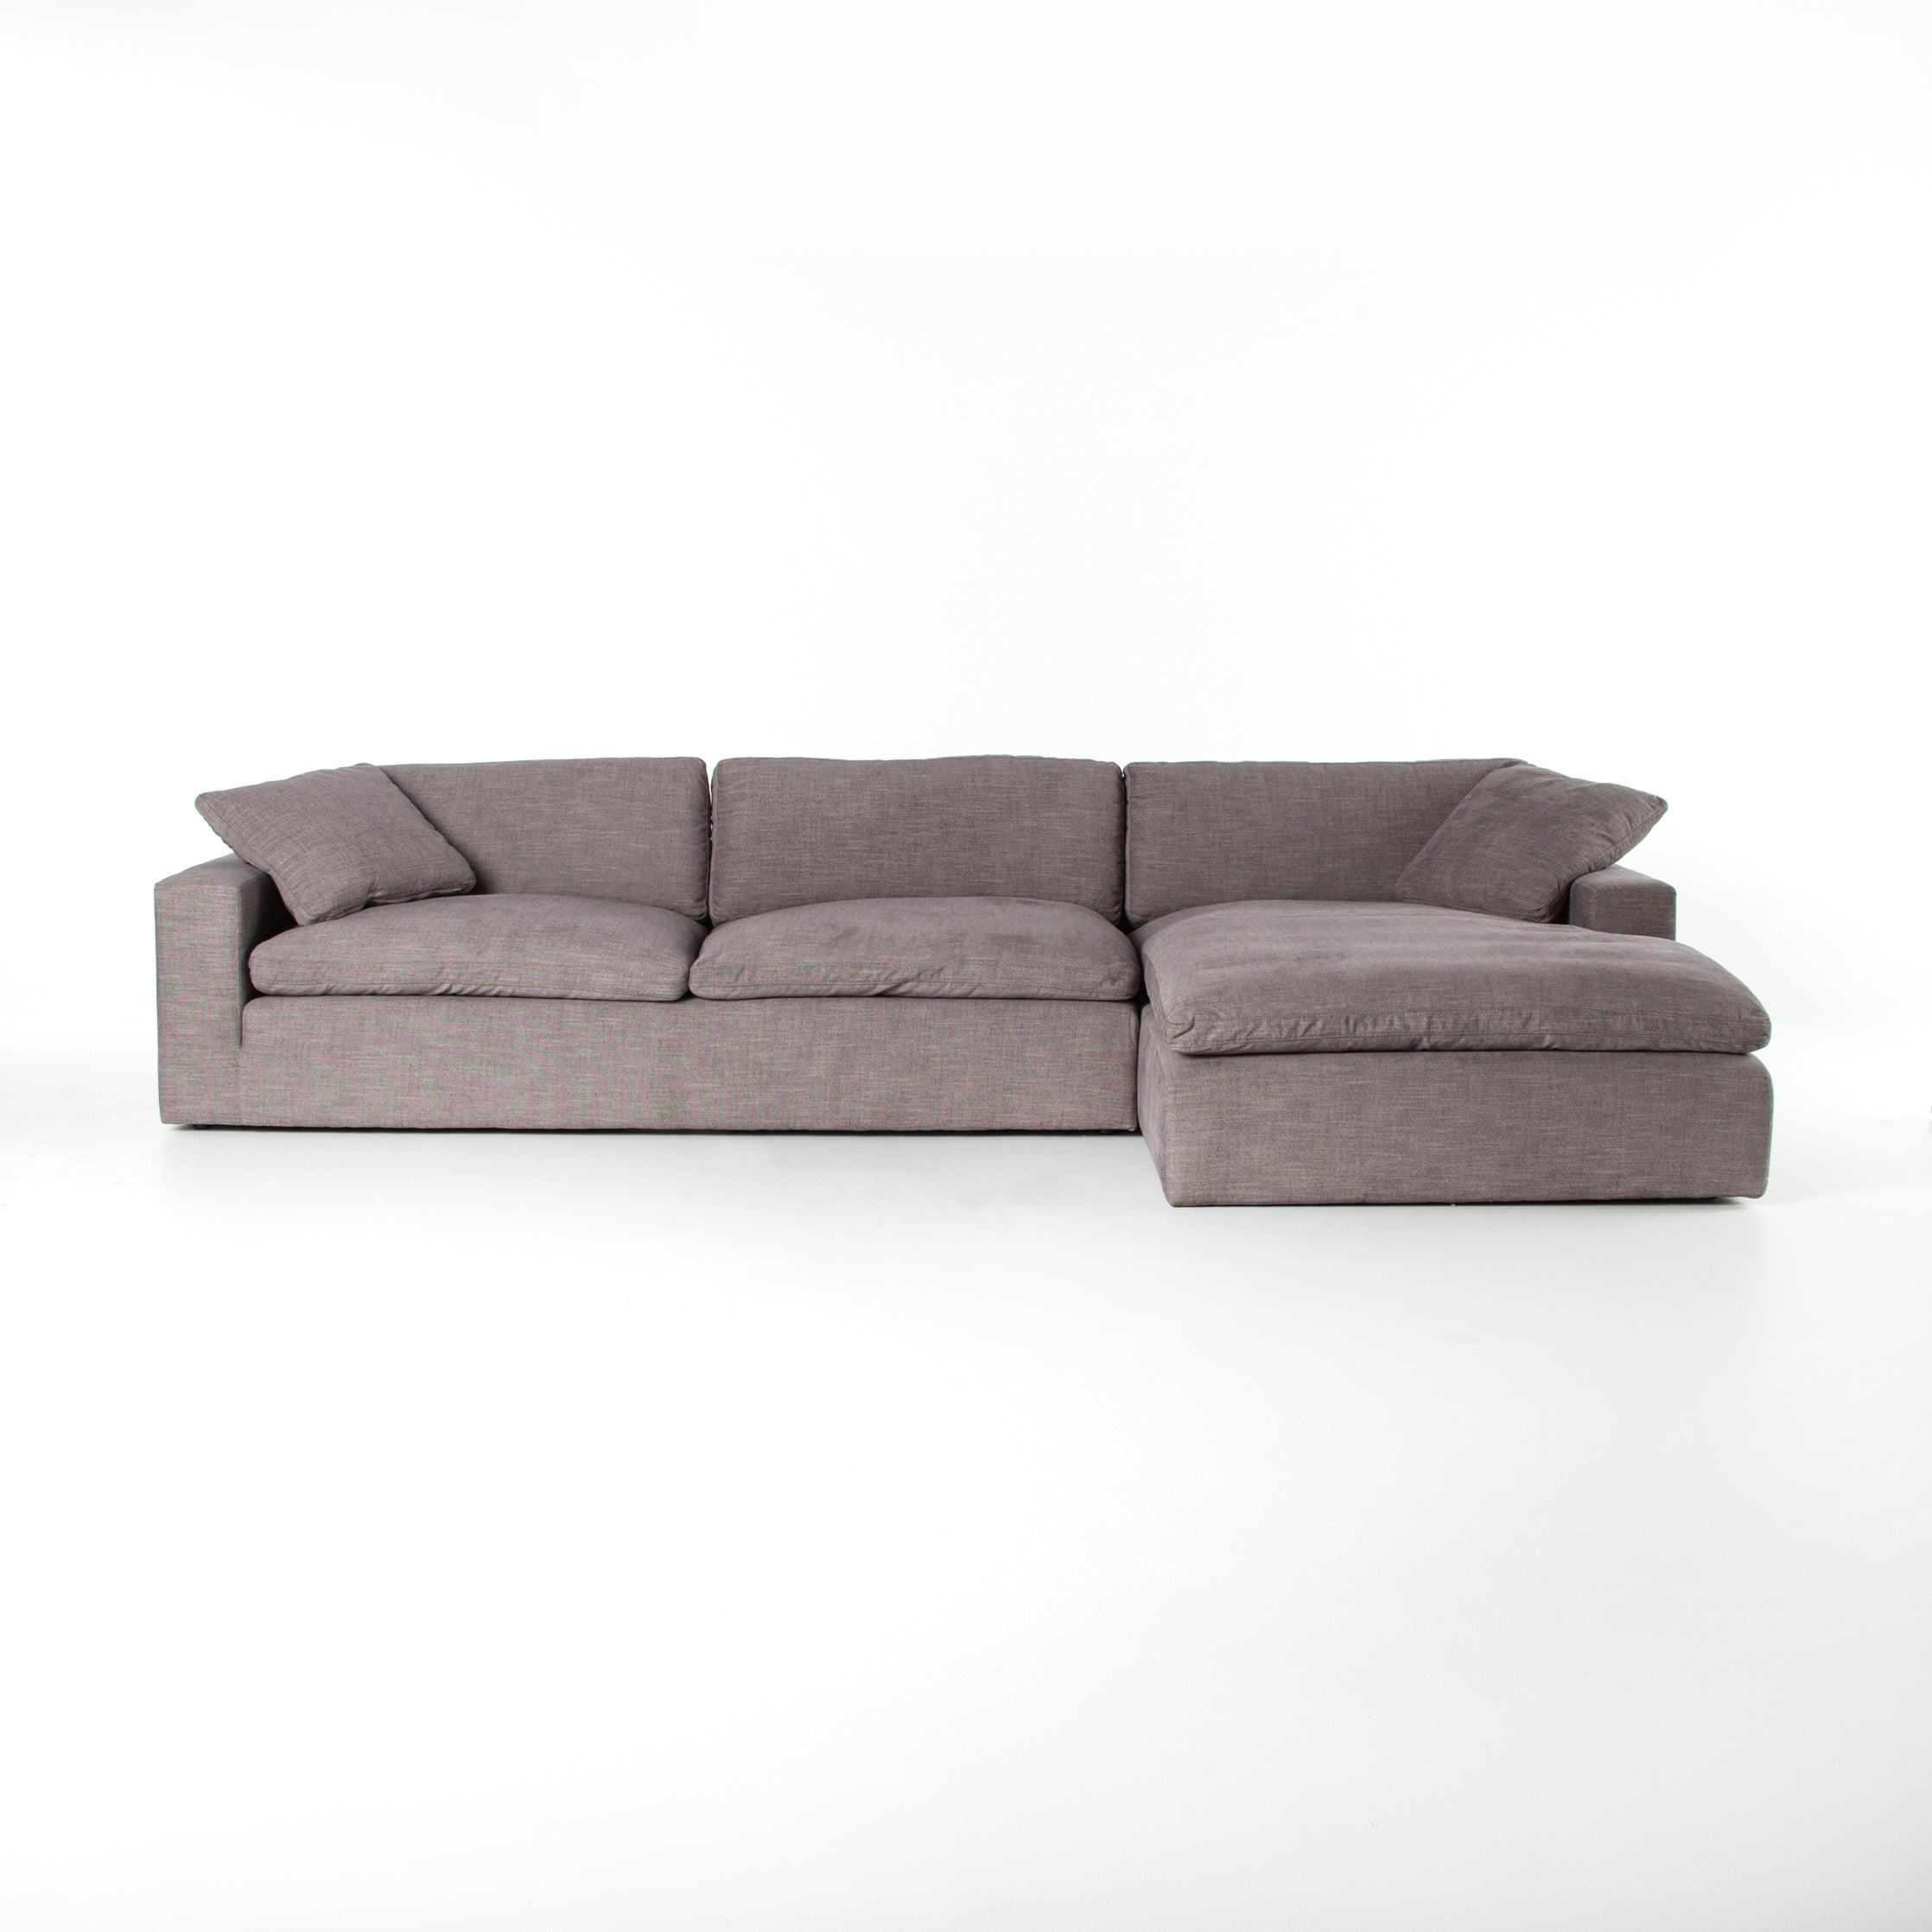 Plume 2 Piece Sectional in Harbor Grey